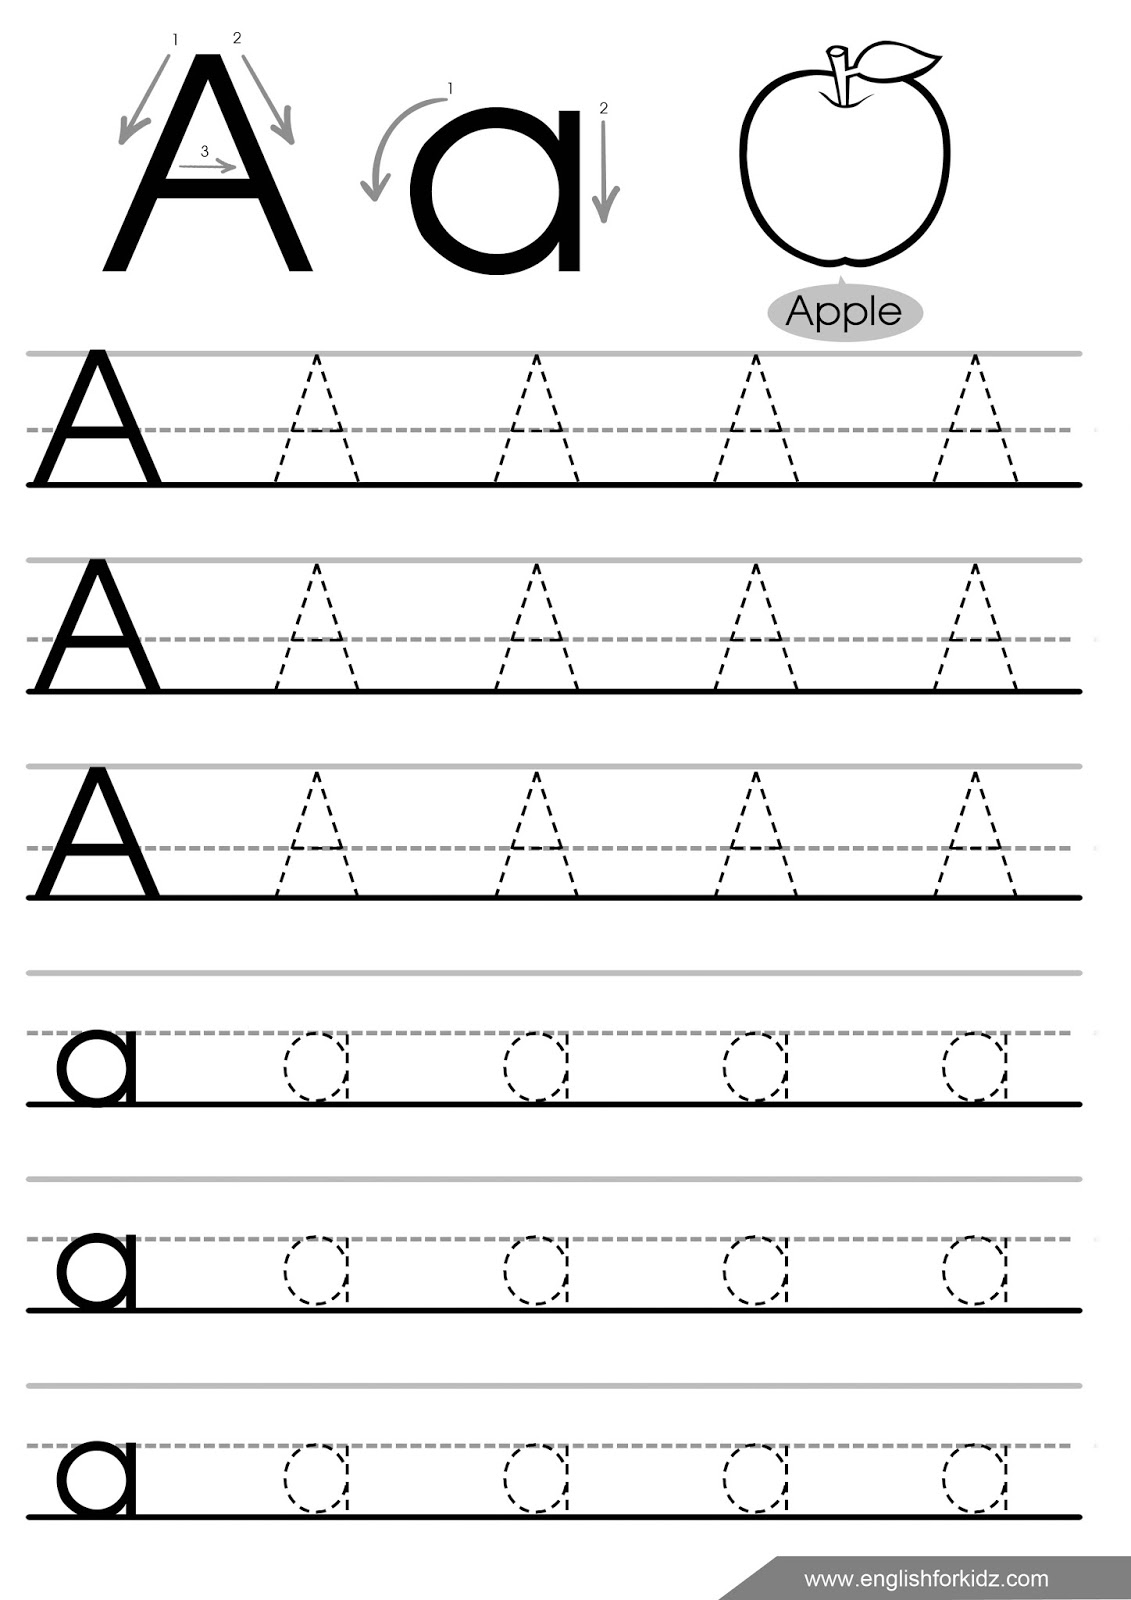 Letter Tracing Worksheets (Letters A - J) intended for Alphabet A Tracing Worksheets